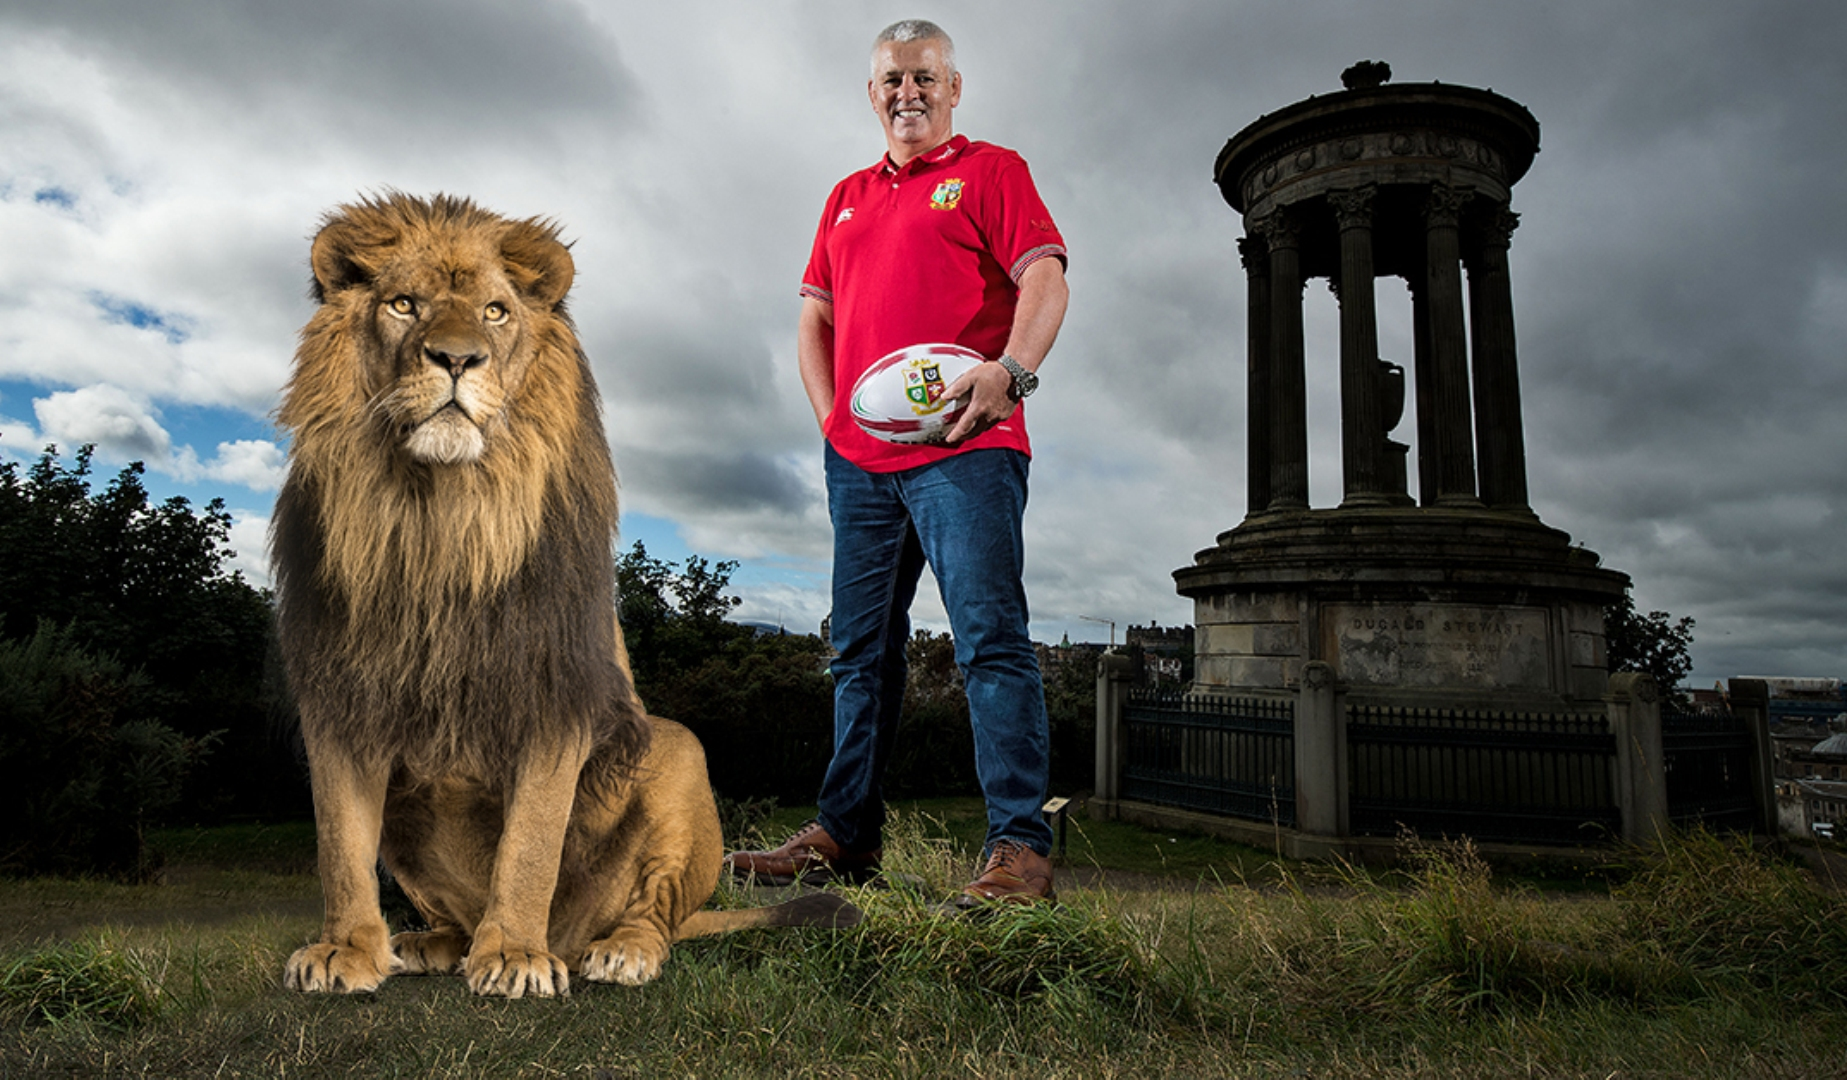 Real life lion to lead team onto pitch in New Zealand